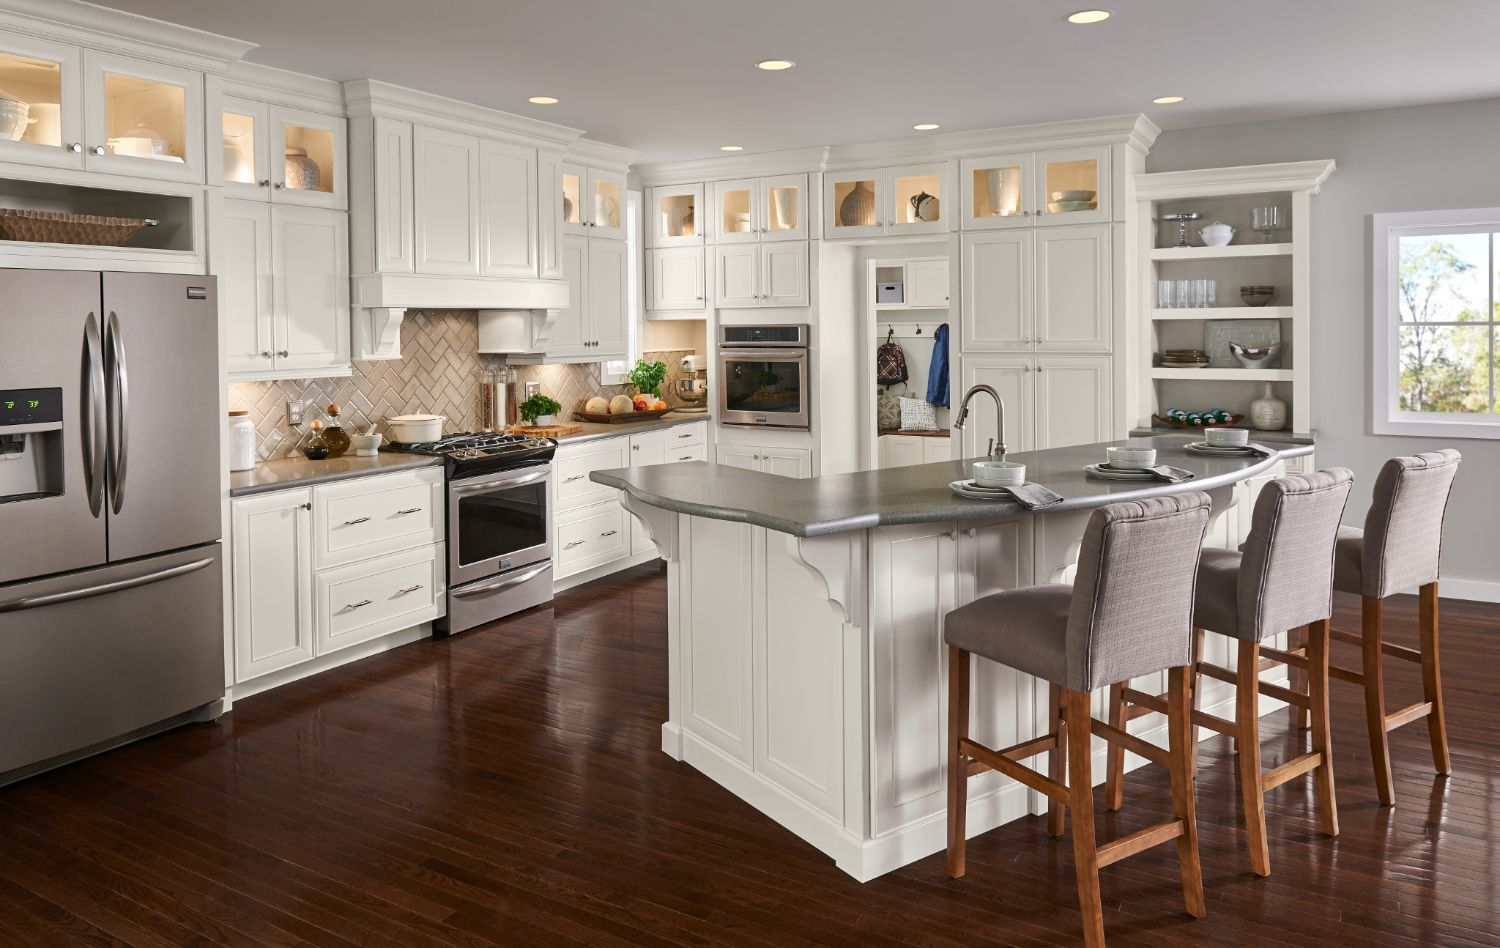 Atherton Collection American Woodmark Kitchen Cabinets Home Depot Buy Kitchen Cabinets Inexpensive Kitchen Cabinets